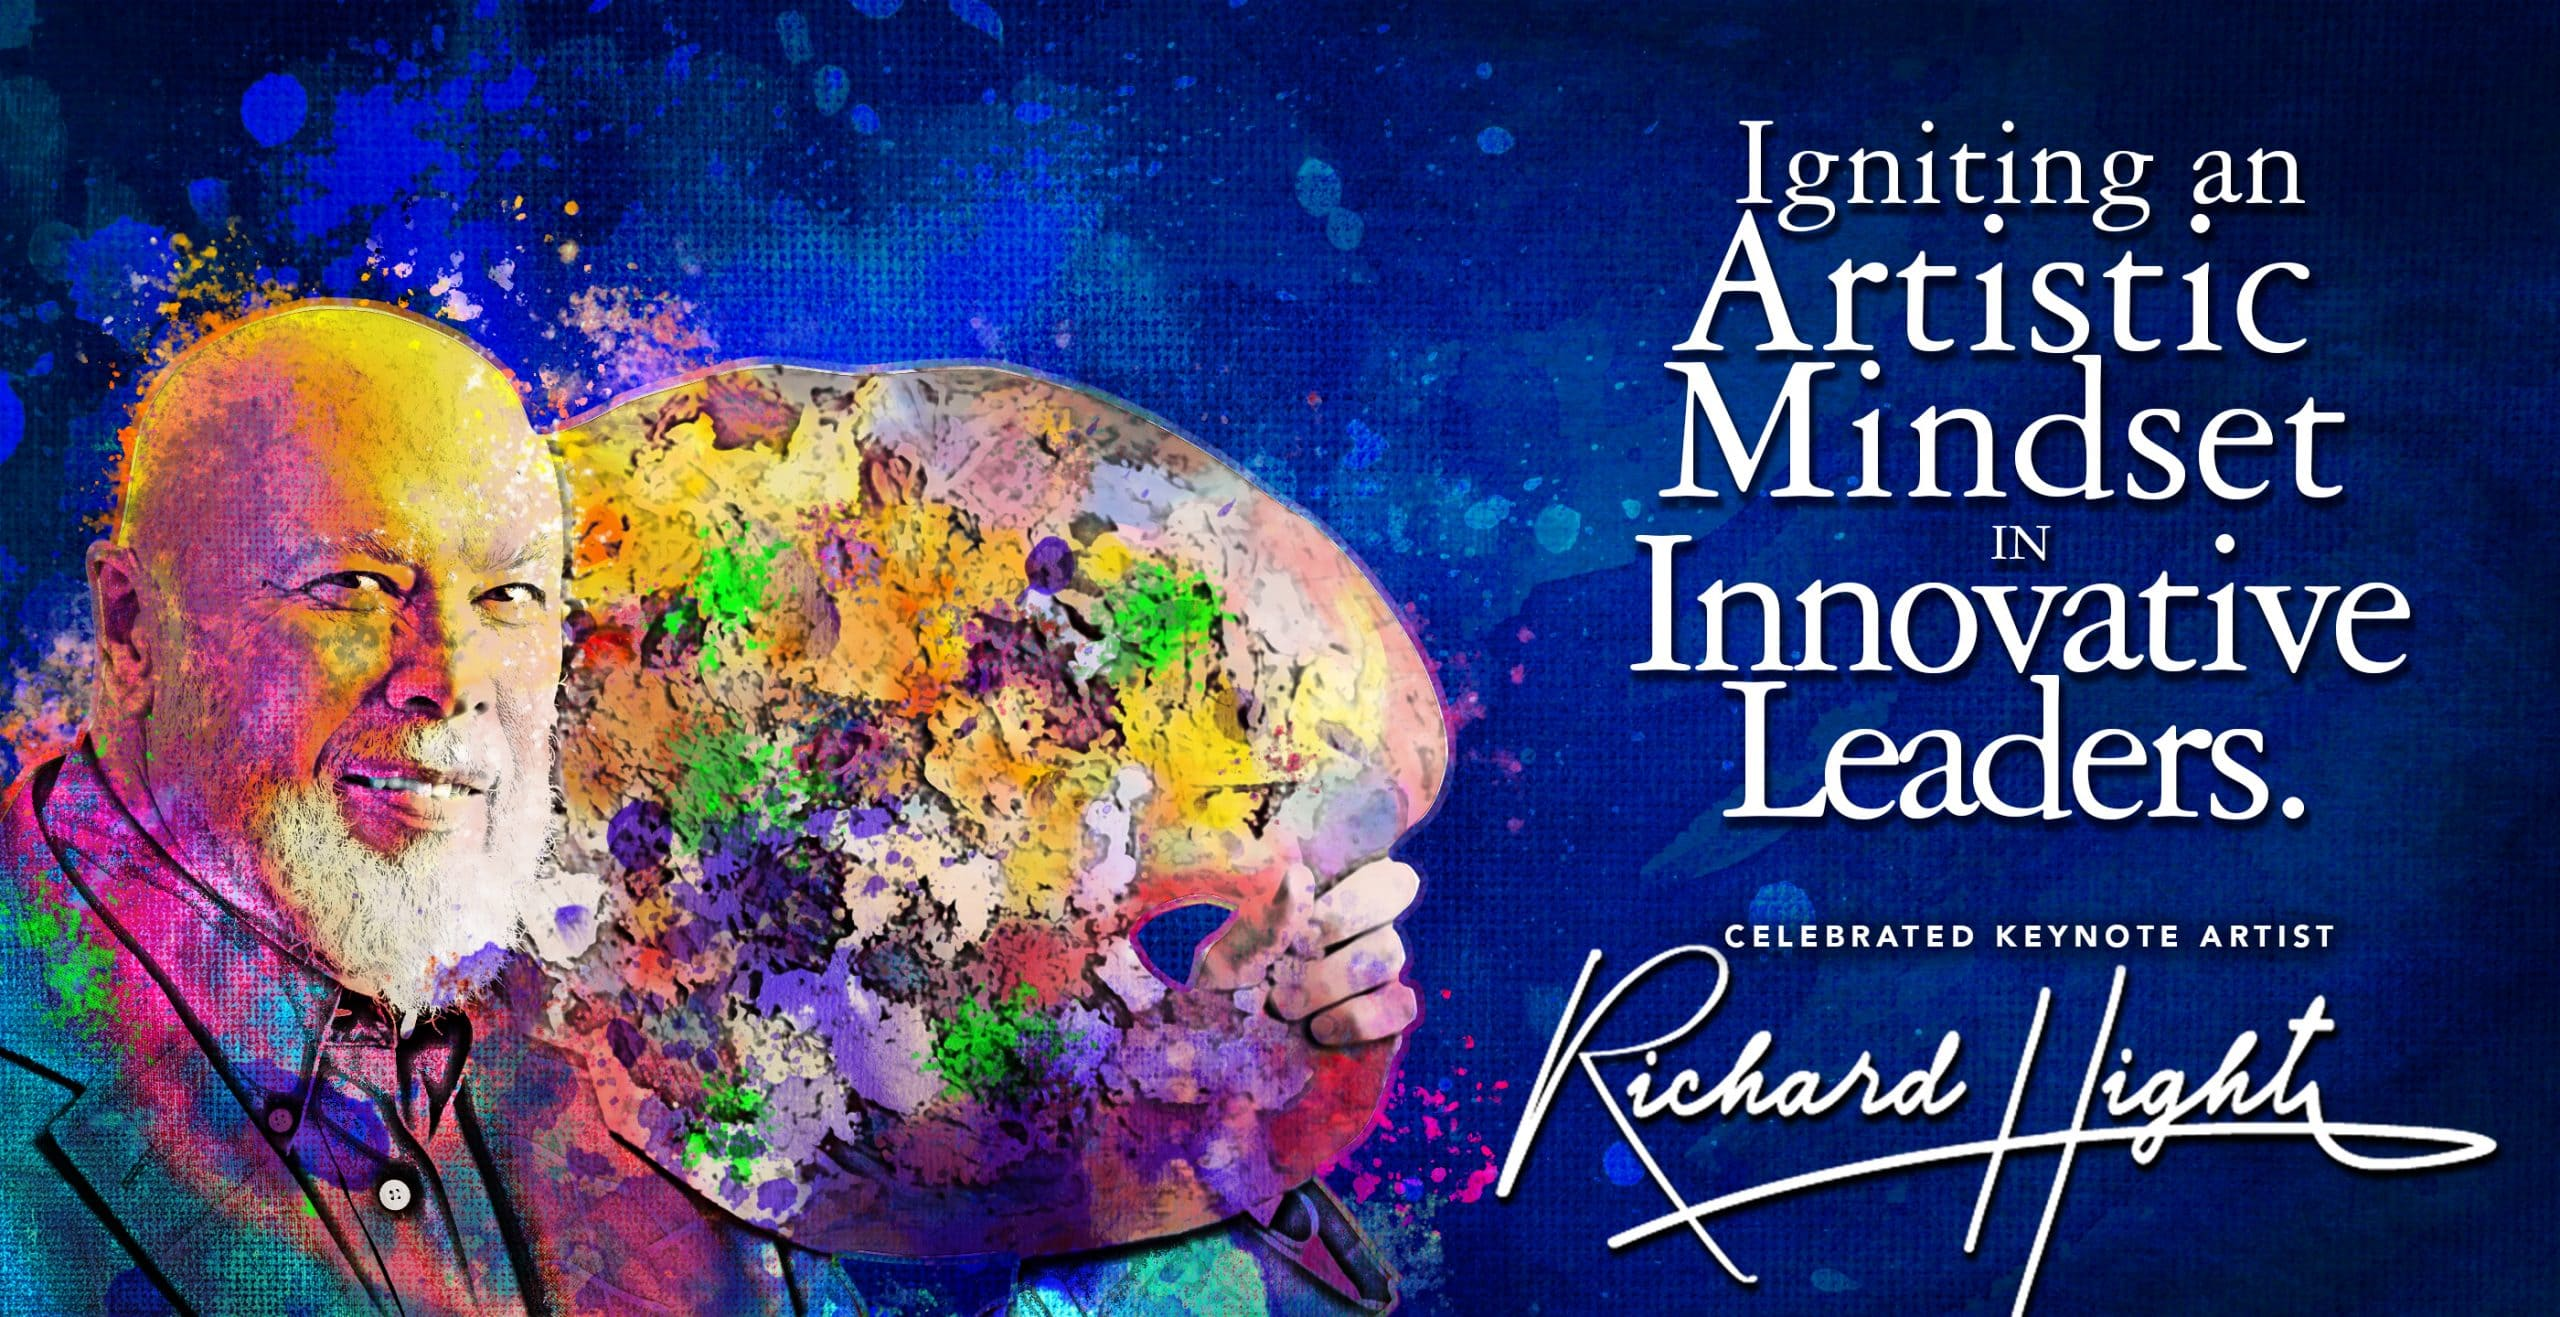 Igniting and Artistic Mindset in Innovative Leaders